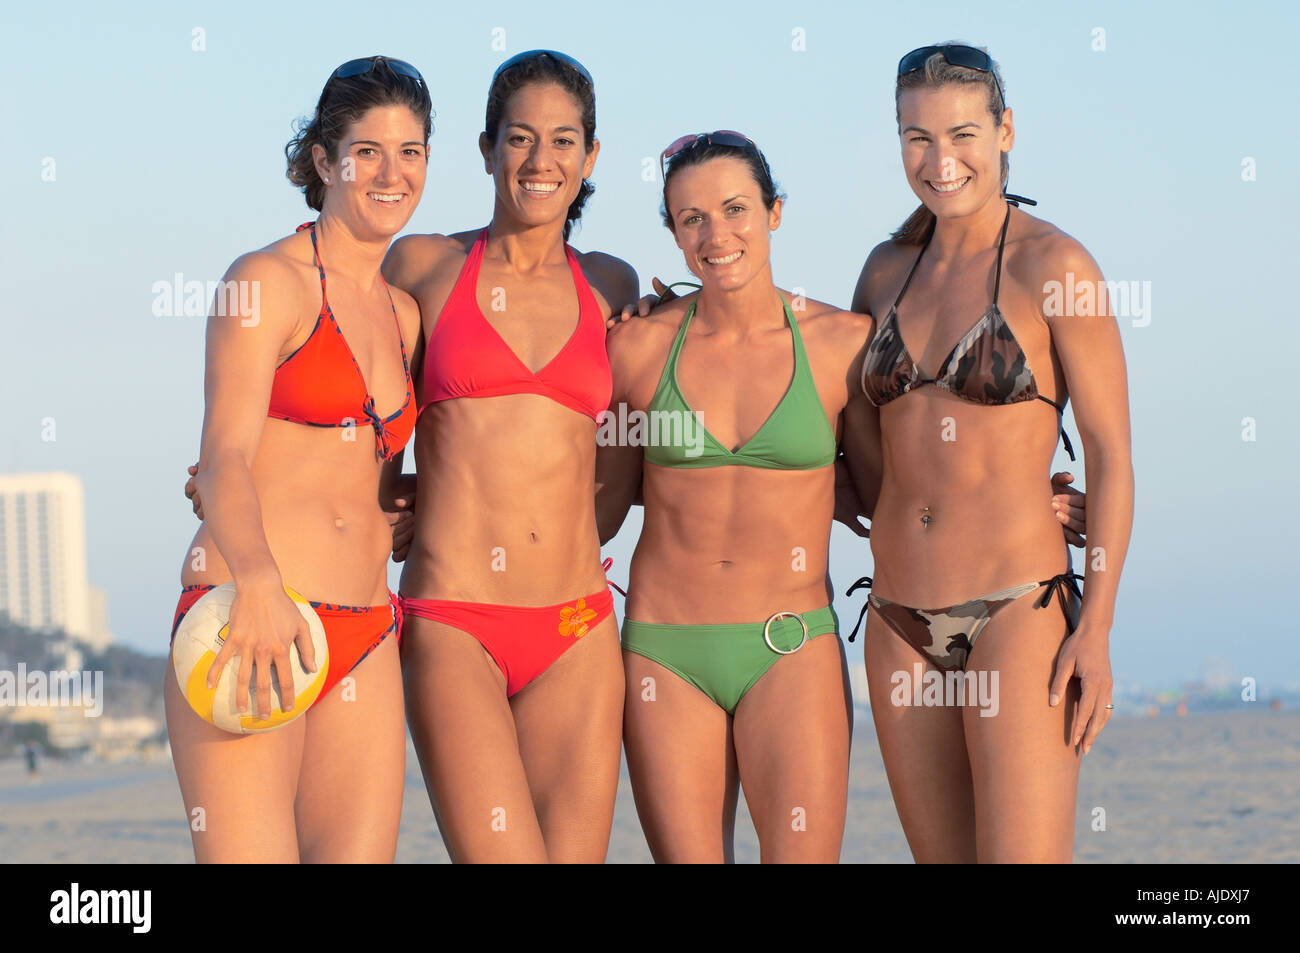 Agree, Sexy beach volleyball payers certainly. What